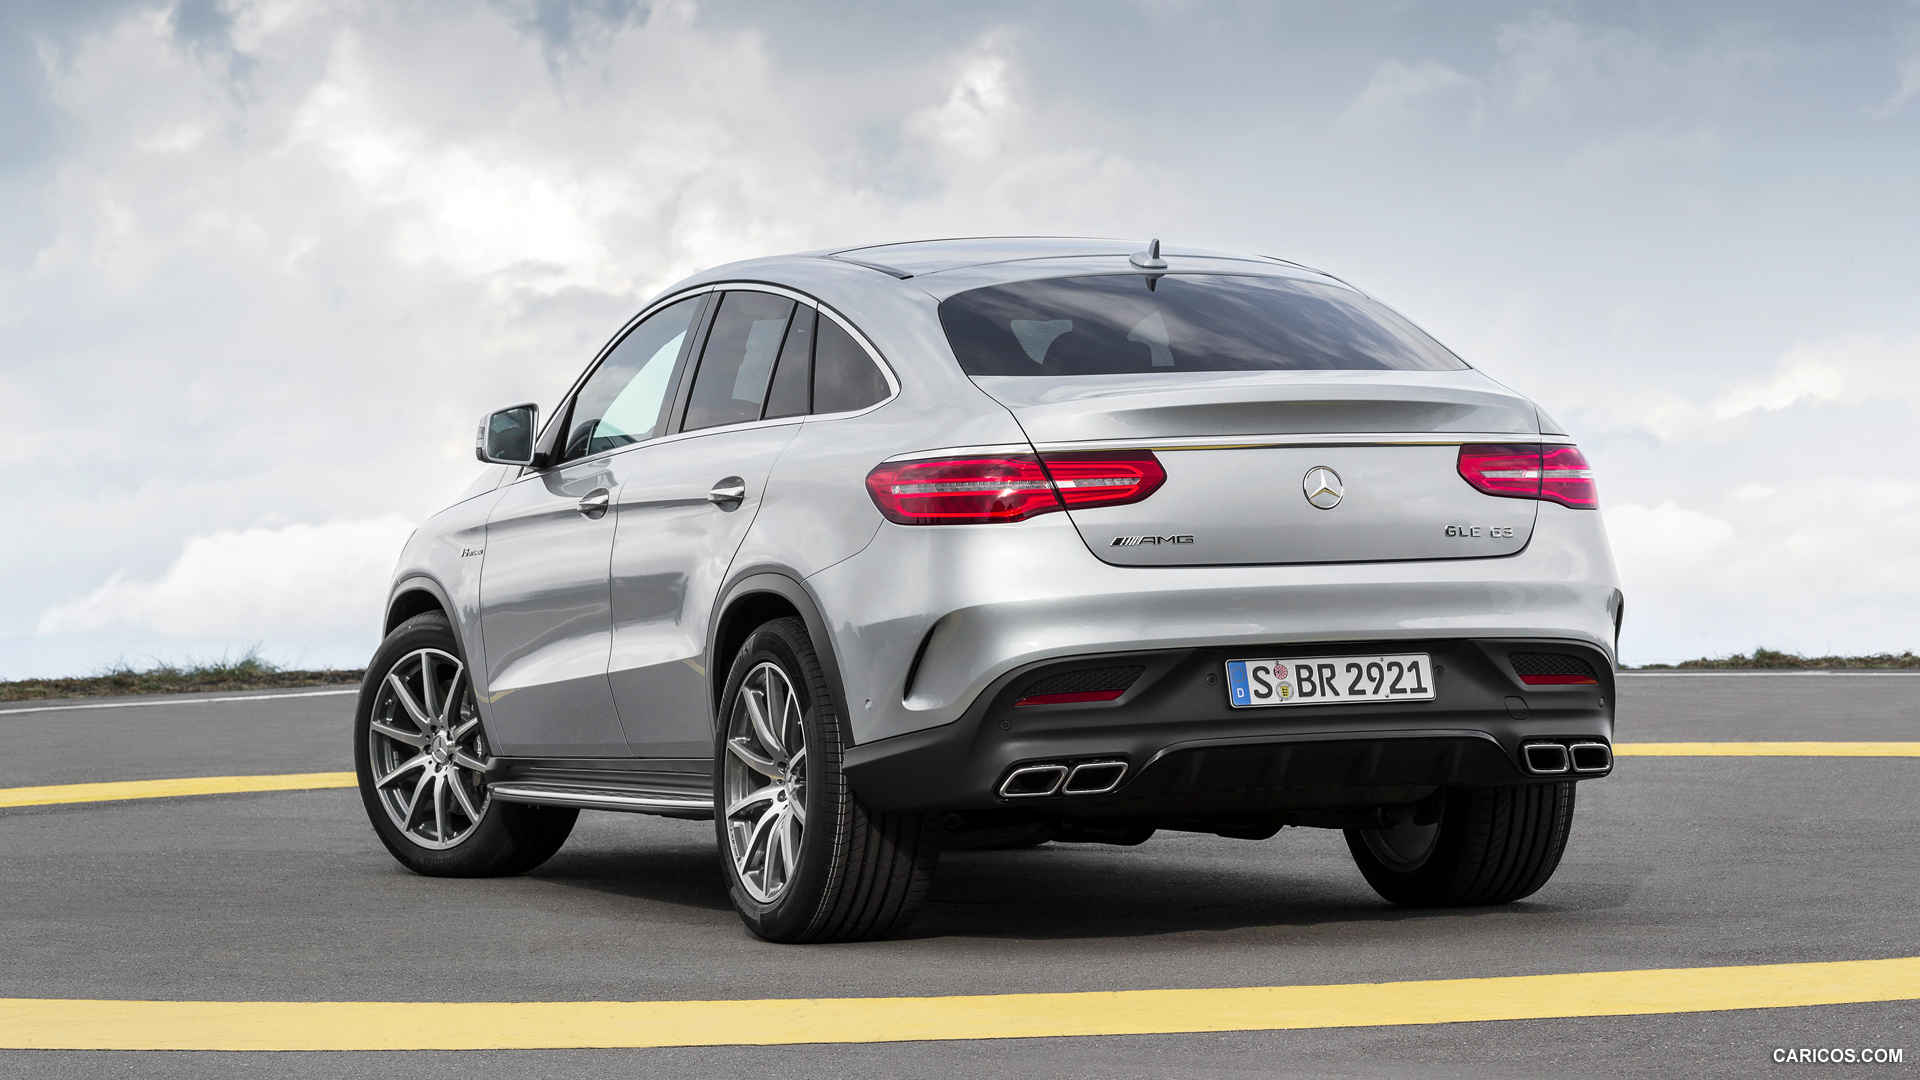 Mercedes-Benz GLE 63 Coupe photo 135676